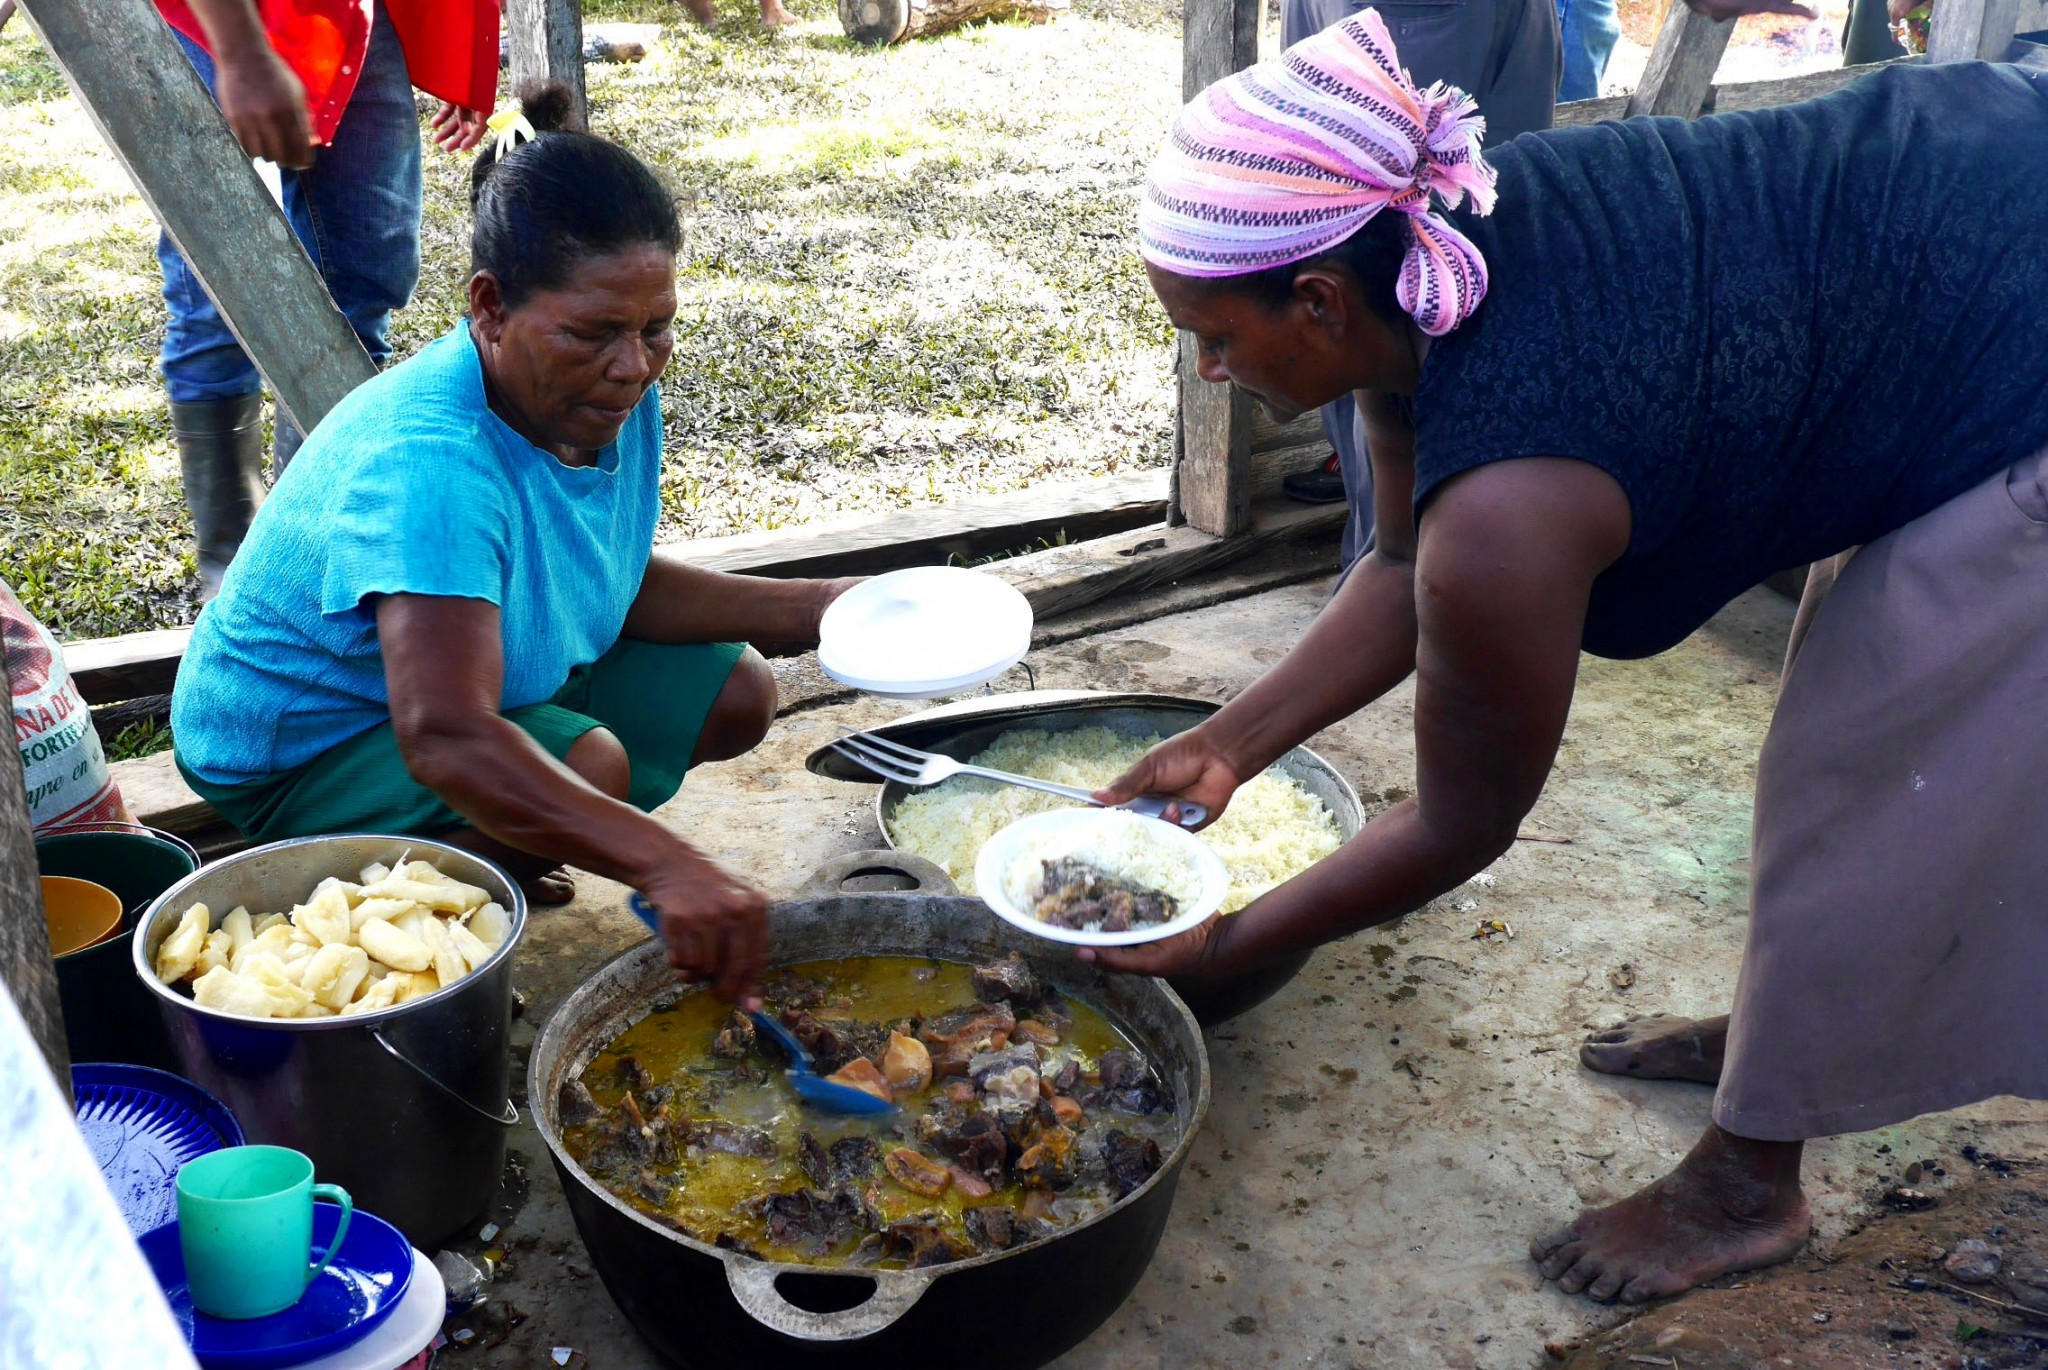 Communal meals reinforce connection